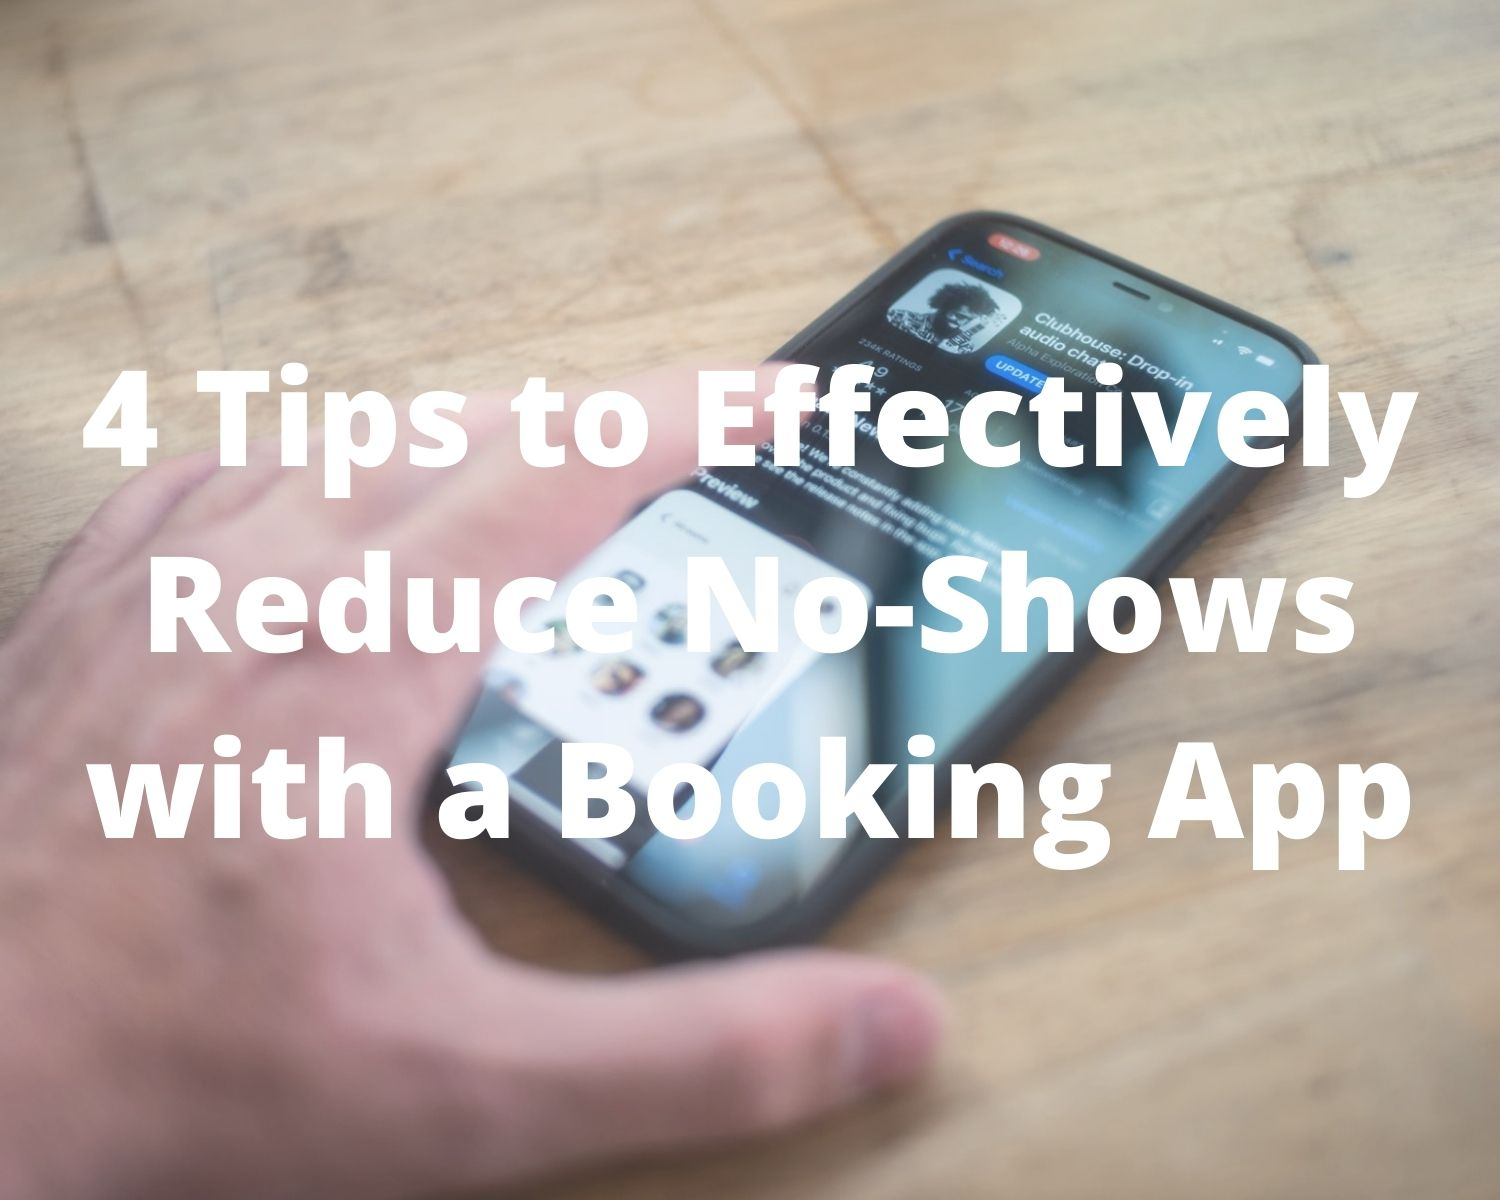 Know about 4 amazing tips that will enable you to effectively minimize no-shows with the help of an easy-to-use booking app.